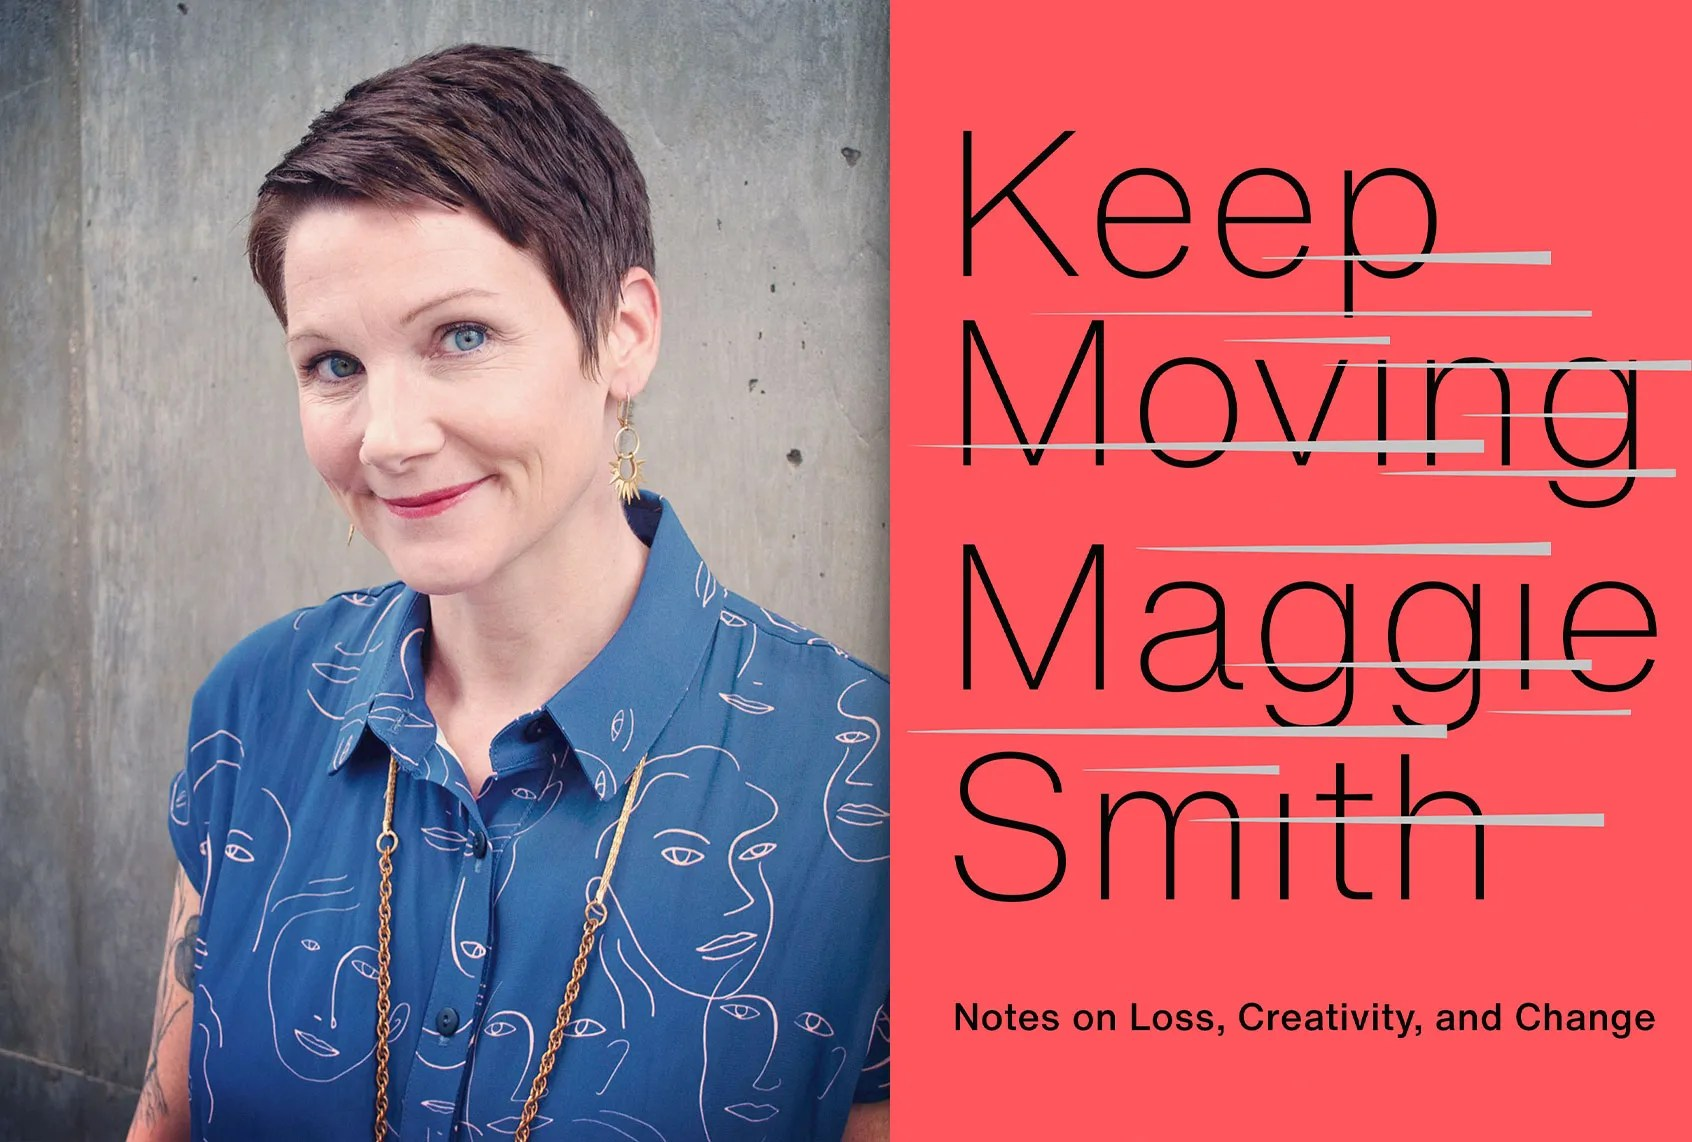 Poet Maggie Smith's new book is a mantra on how to